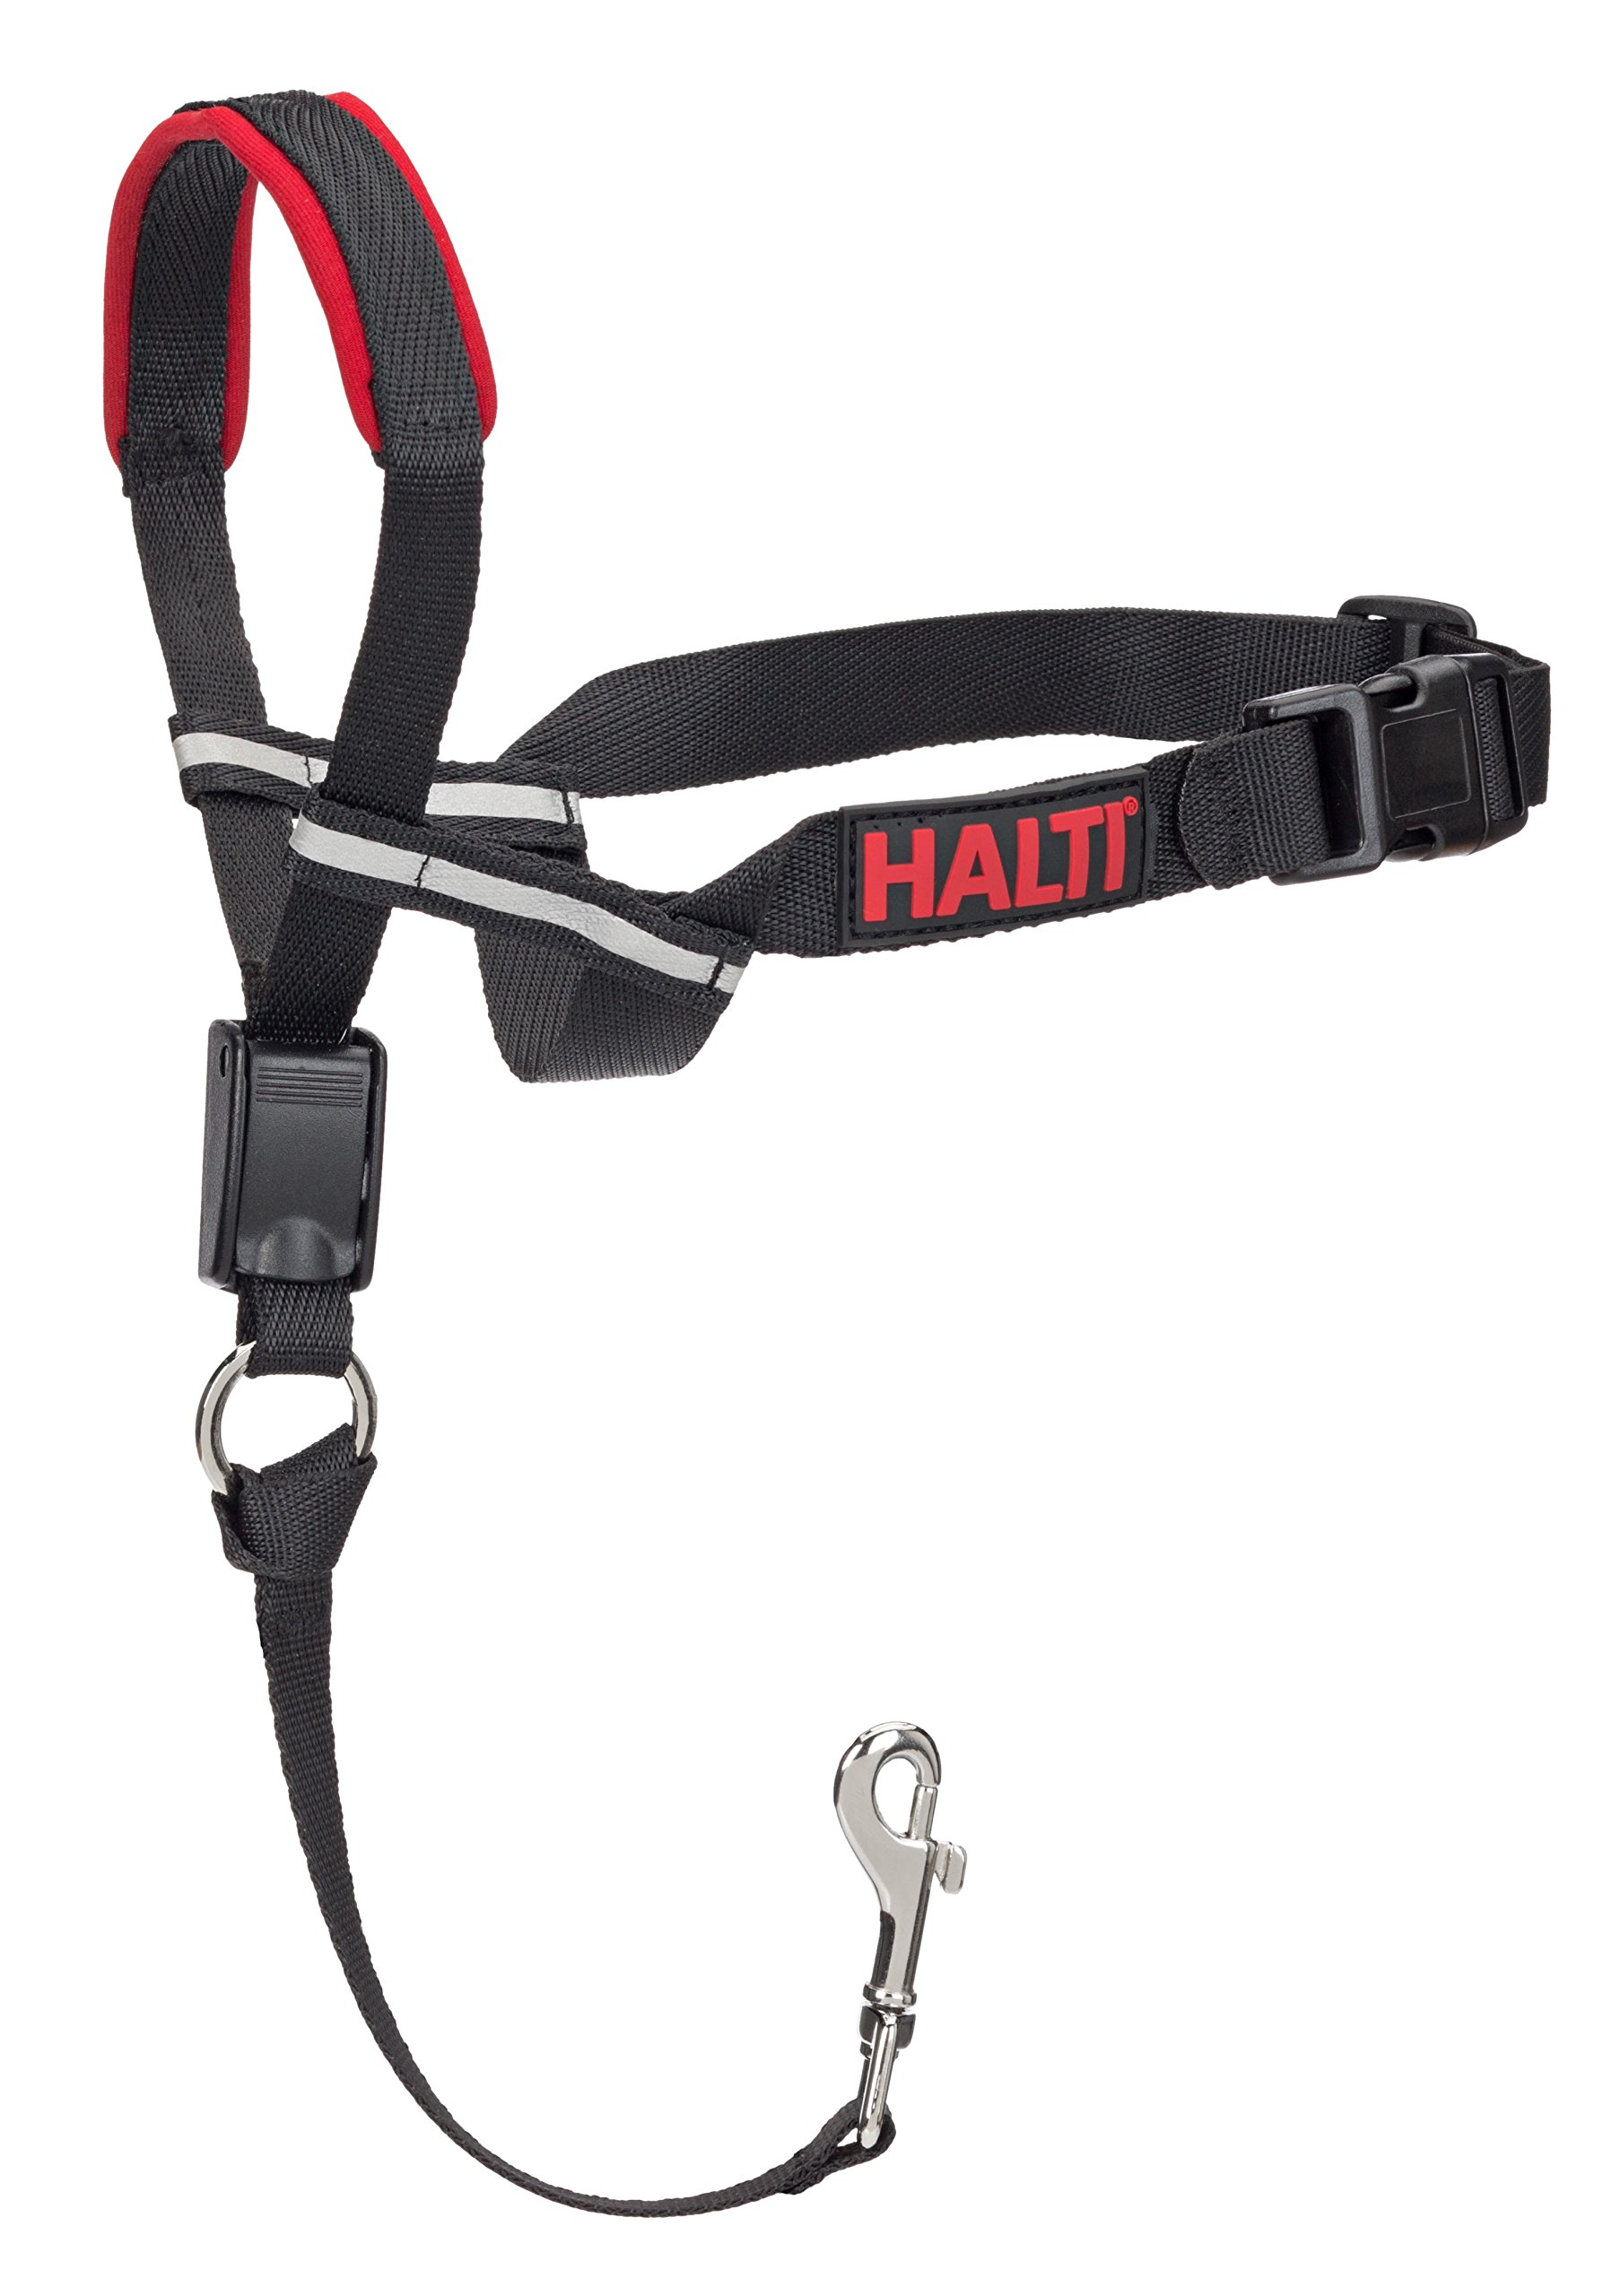 Halti Head Collar, Adjustable Head Halter Collar for Dogs, Head Collar to Stop Pulling for Small Dogs by The Company of Animals